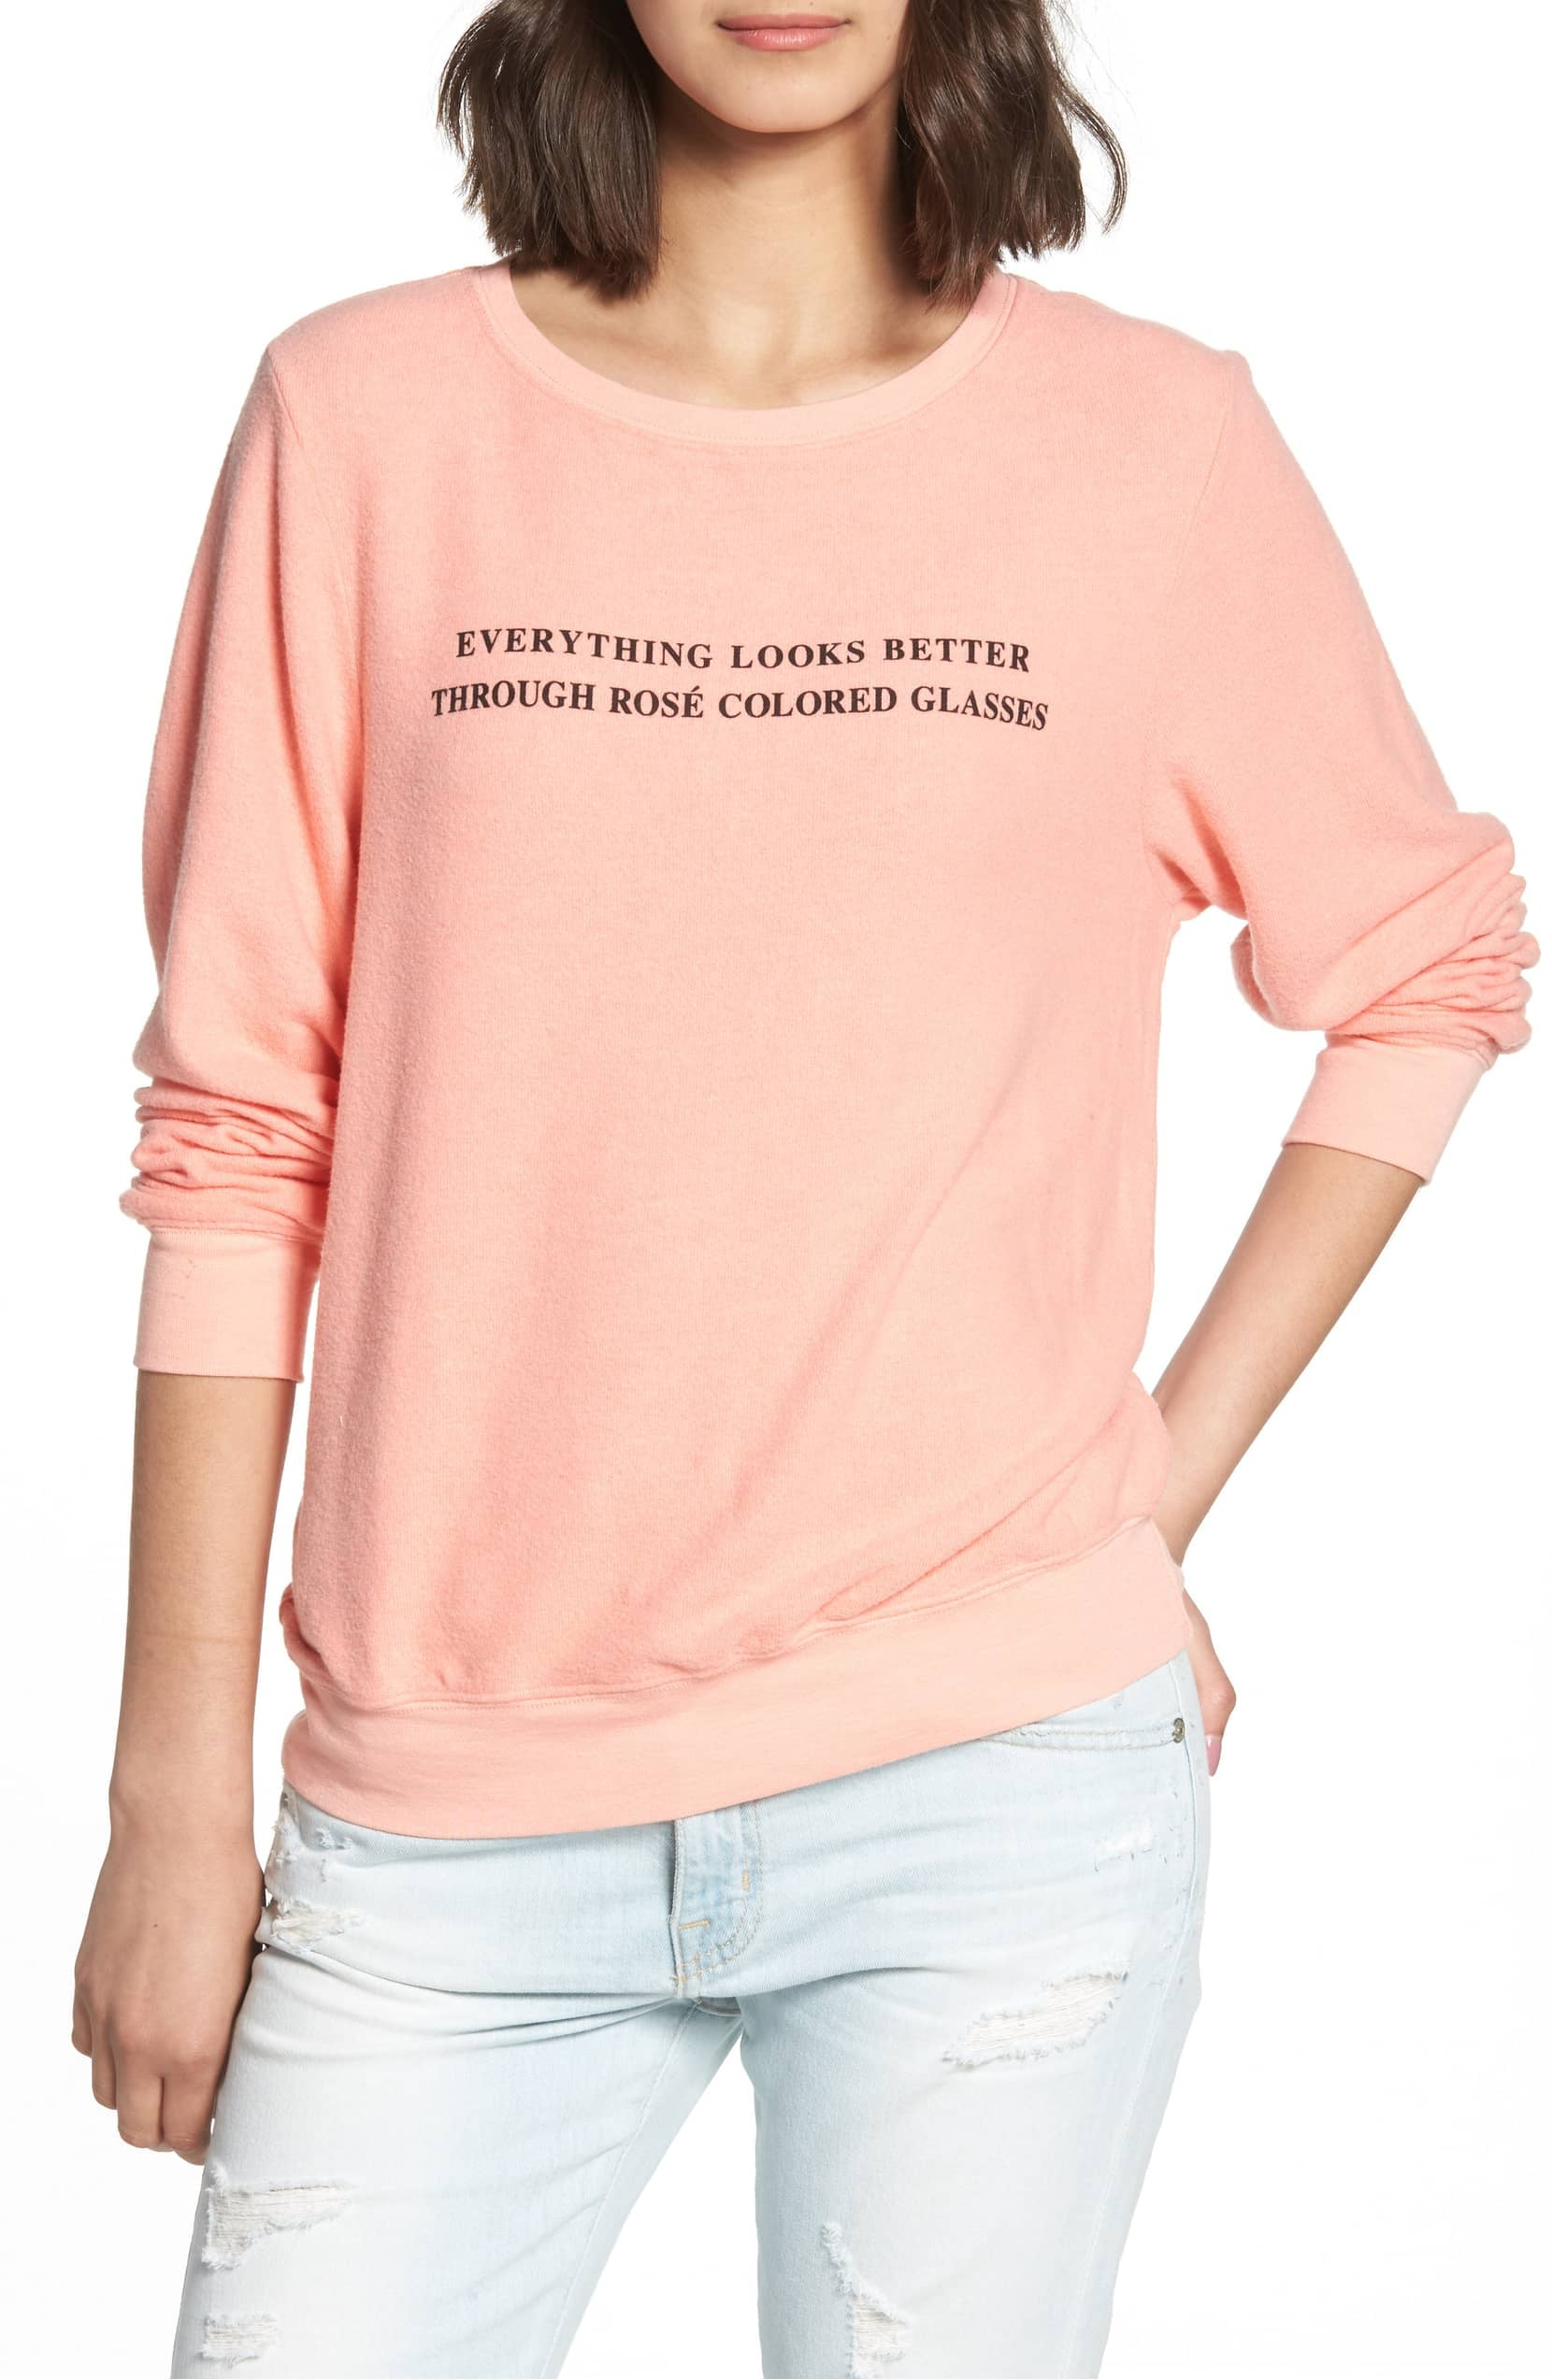 Wildfox Christmas Sweatshirt.Wildfox Rose Glasses Beach Sweatshirt 18 Funny Wine Gifts